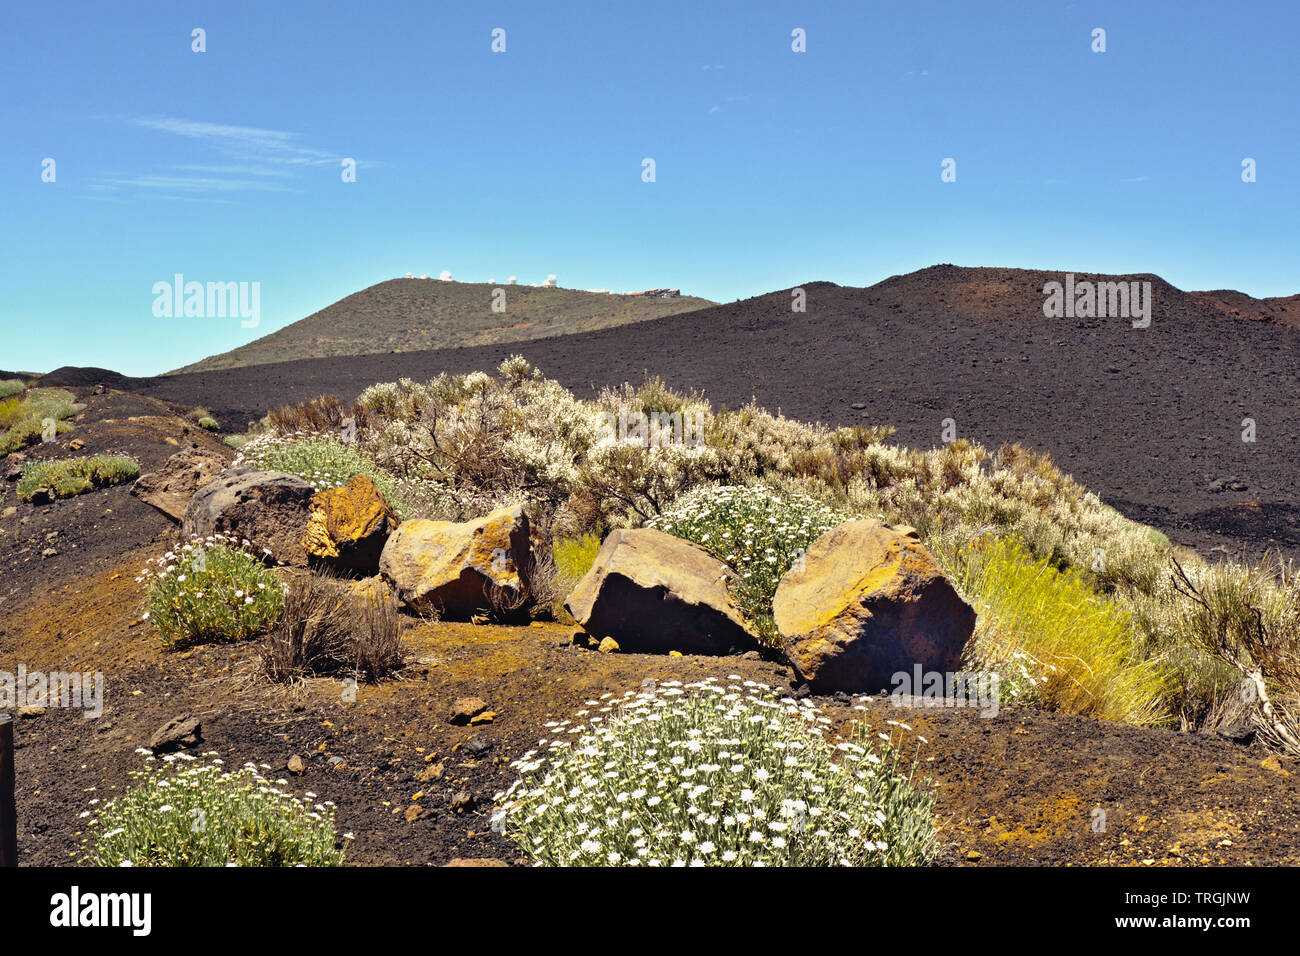 blooming yellow perennials and white marguerites in front of a black lava mountain, behind the top of the Pico del Teide with its 3618 m height the hi - Stock Image